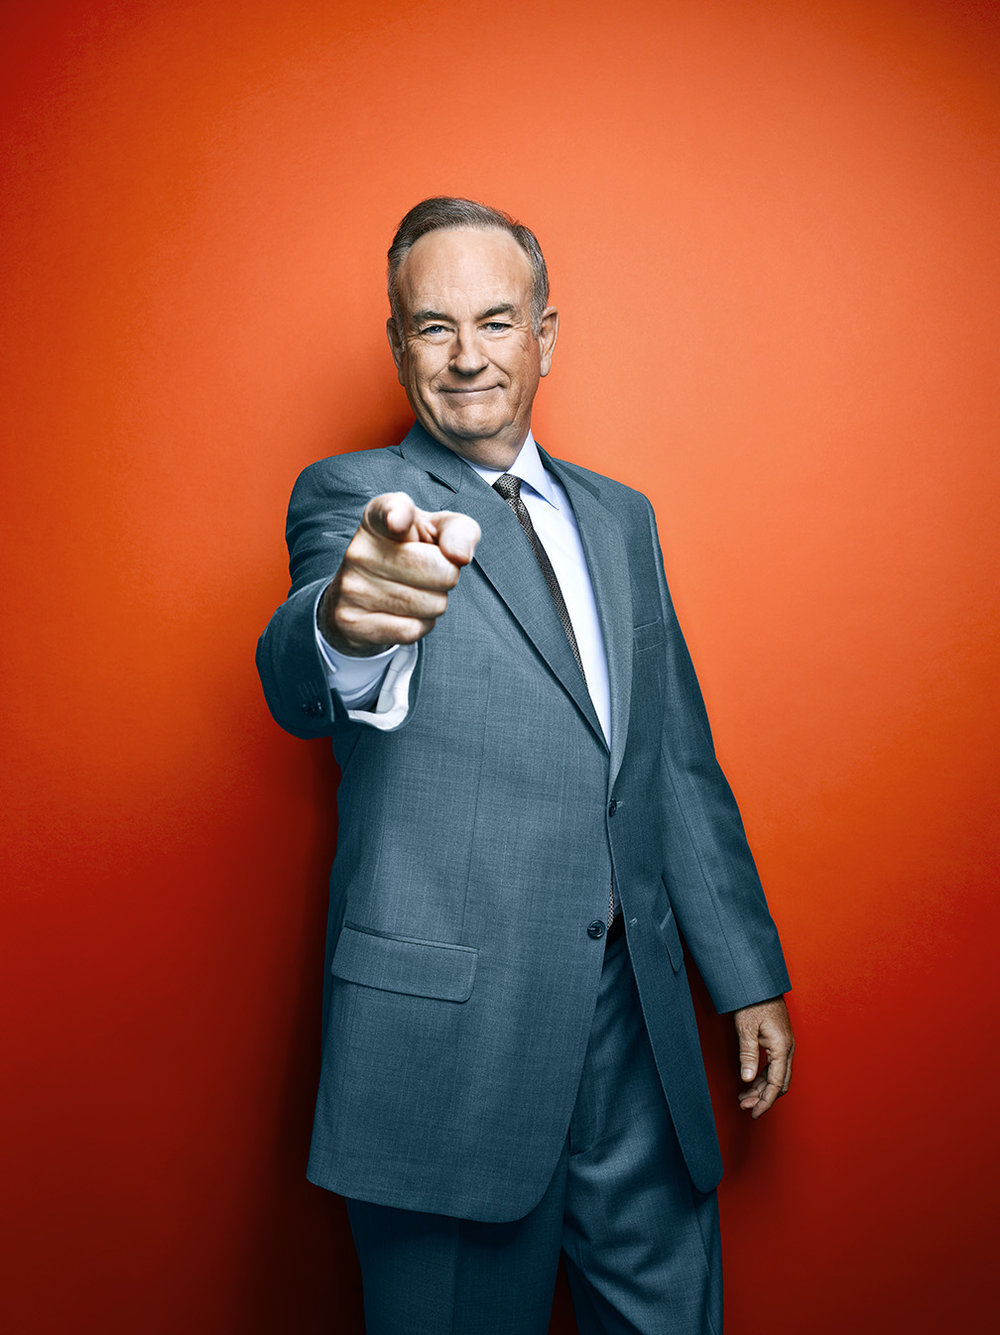 thursday 6 2017 television uncovered per thewrap i f you re wondering how it makes financial sense for bill o reilly and fox news to pay out a reported 13 million to women accusing the